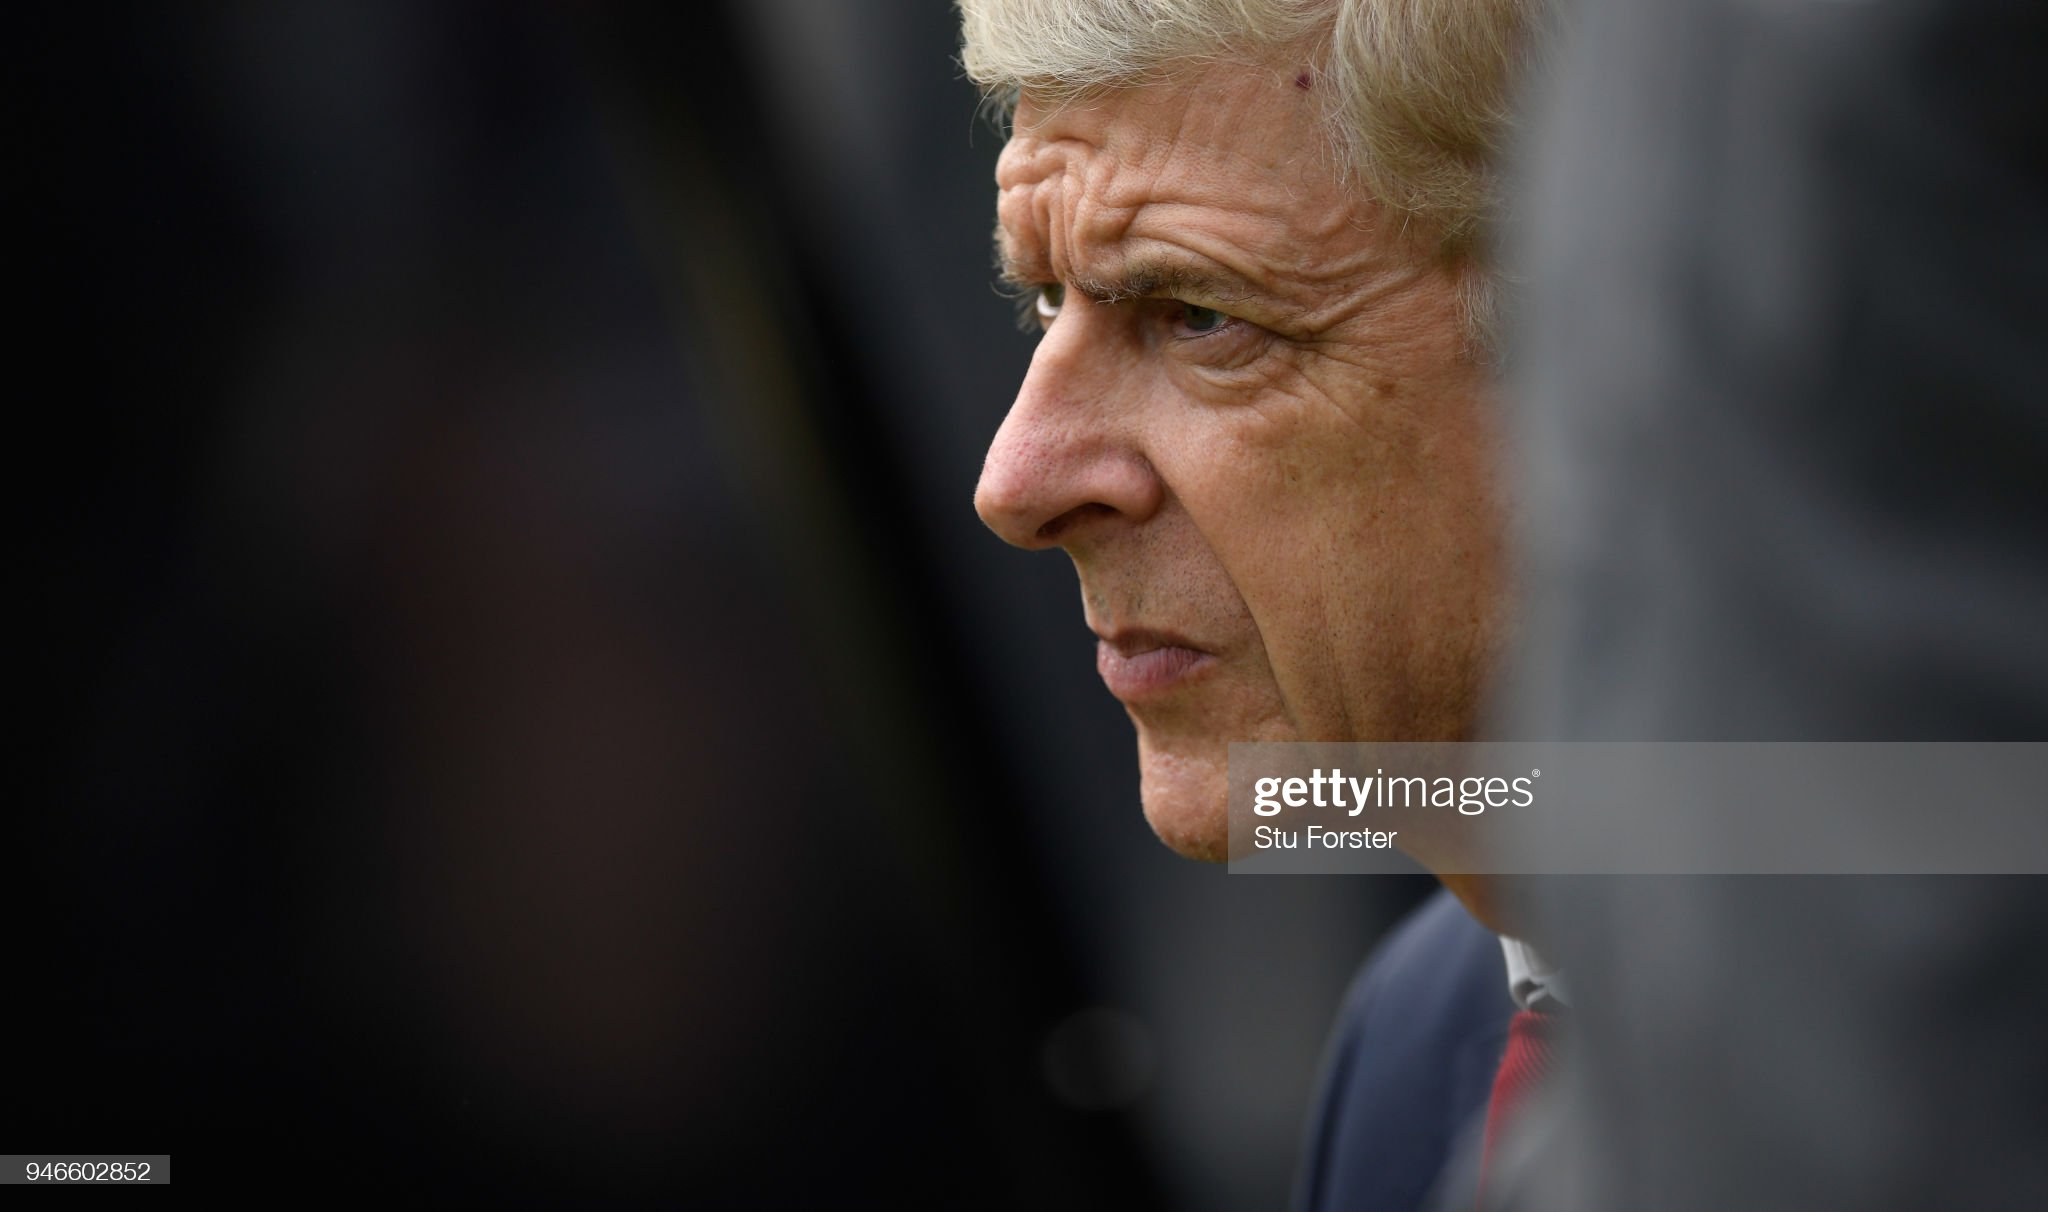 https://media.gettyimages.com/photos/arsenal-manager-arsene-wenger-looks-on-during-the-premier-league-picture-id946602852?s=2048x2048